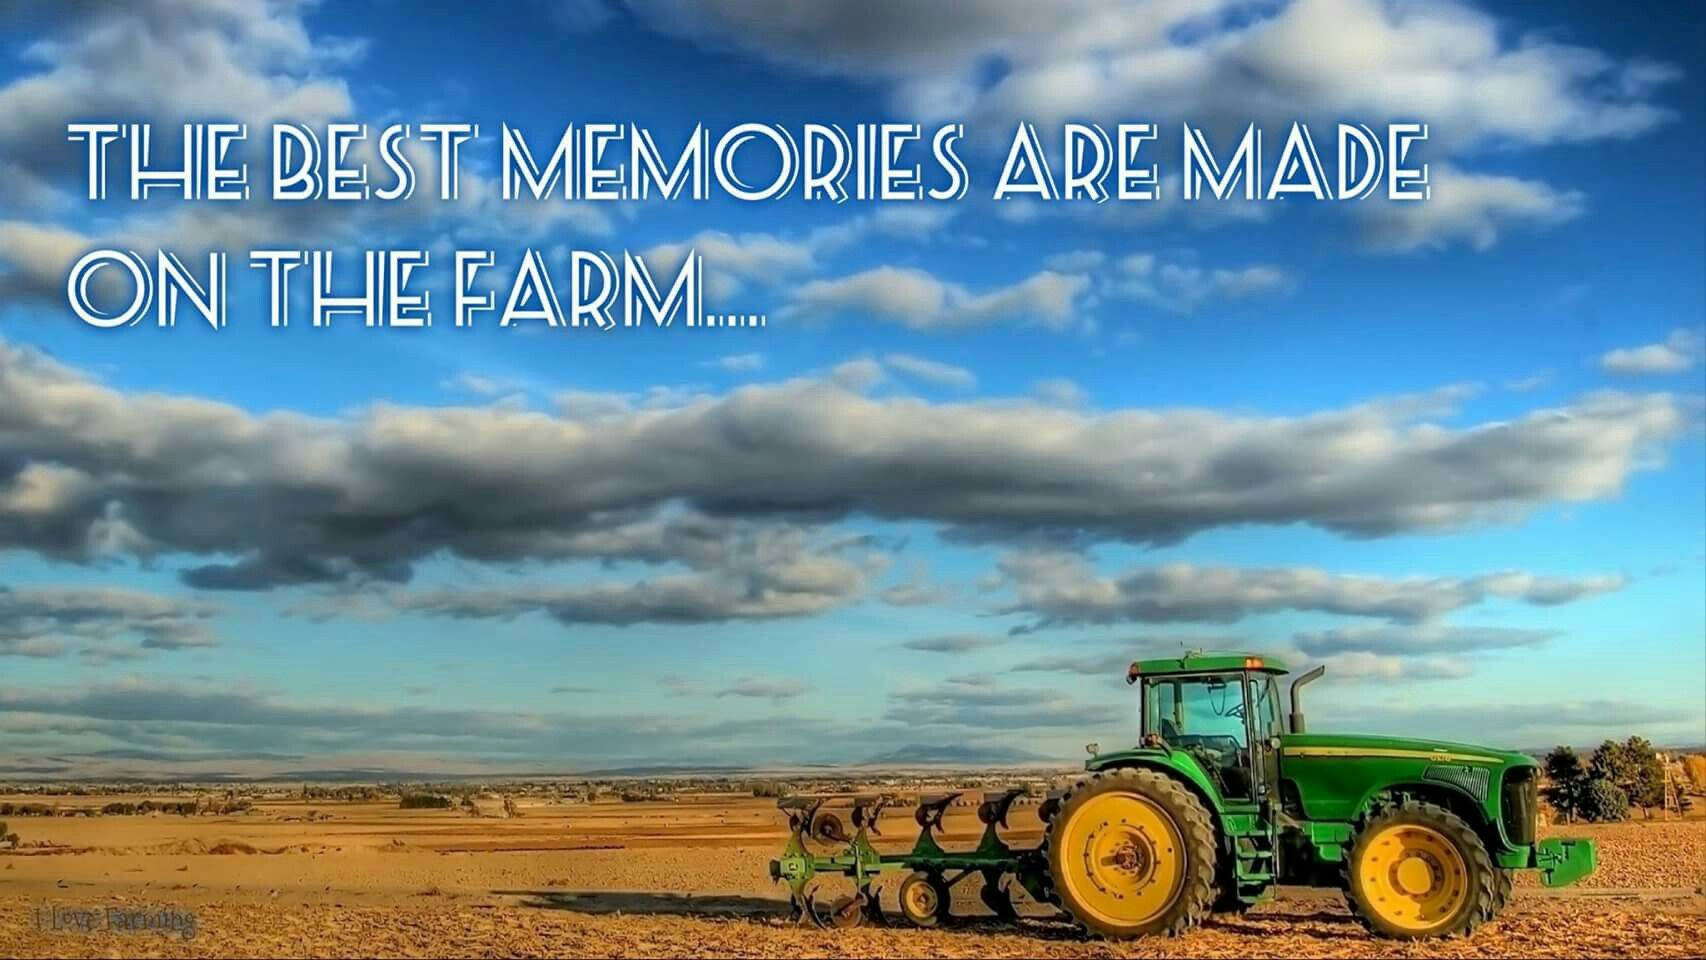 Farming Quotes Pinr A Peters On Farm Quotes And Photos  Pinterest